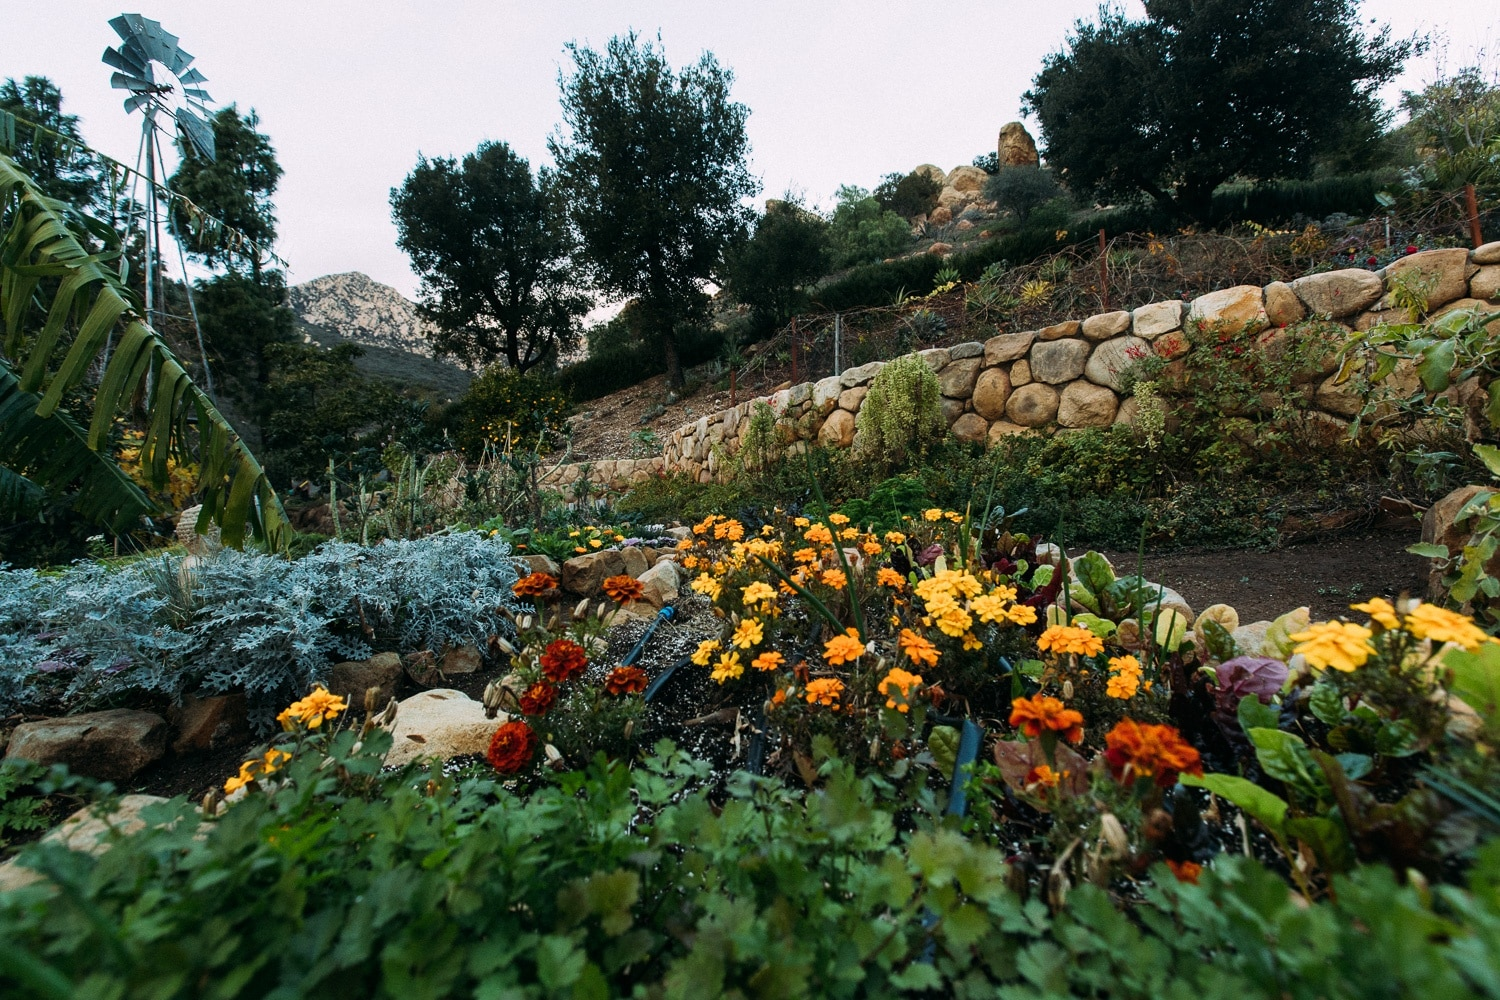 Stone Walls and Natural Gardens